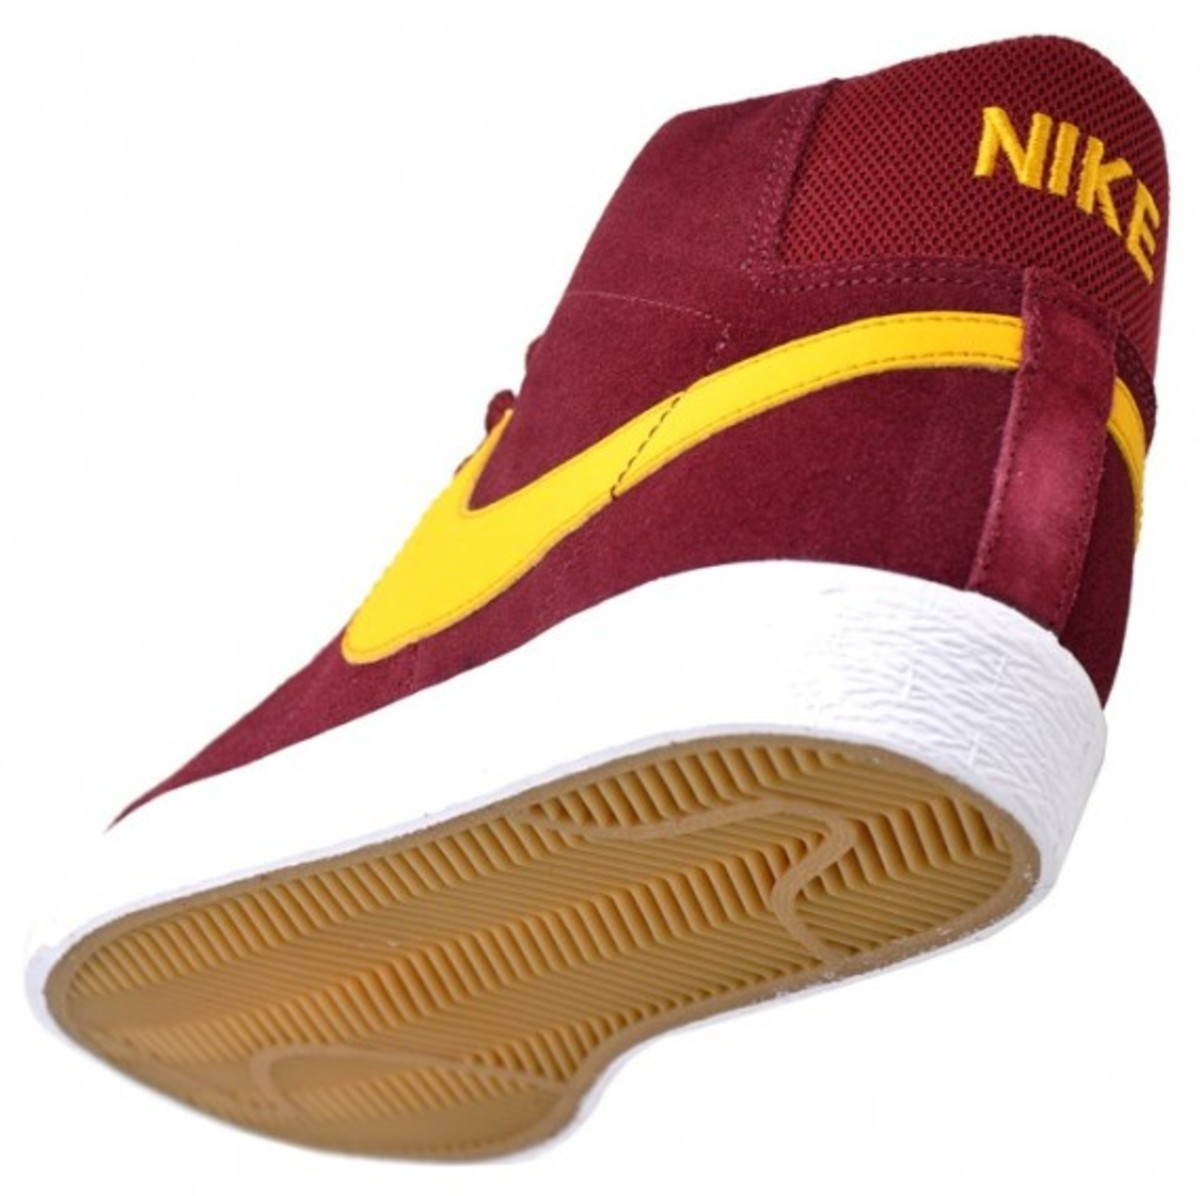 nike-sb-blazer-team-red-yellow-orchard-3